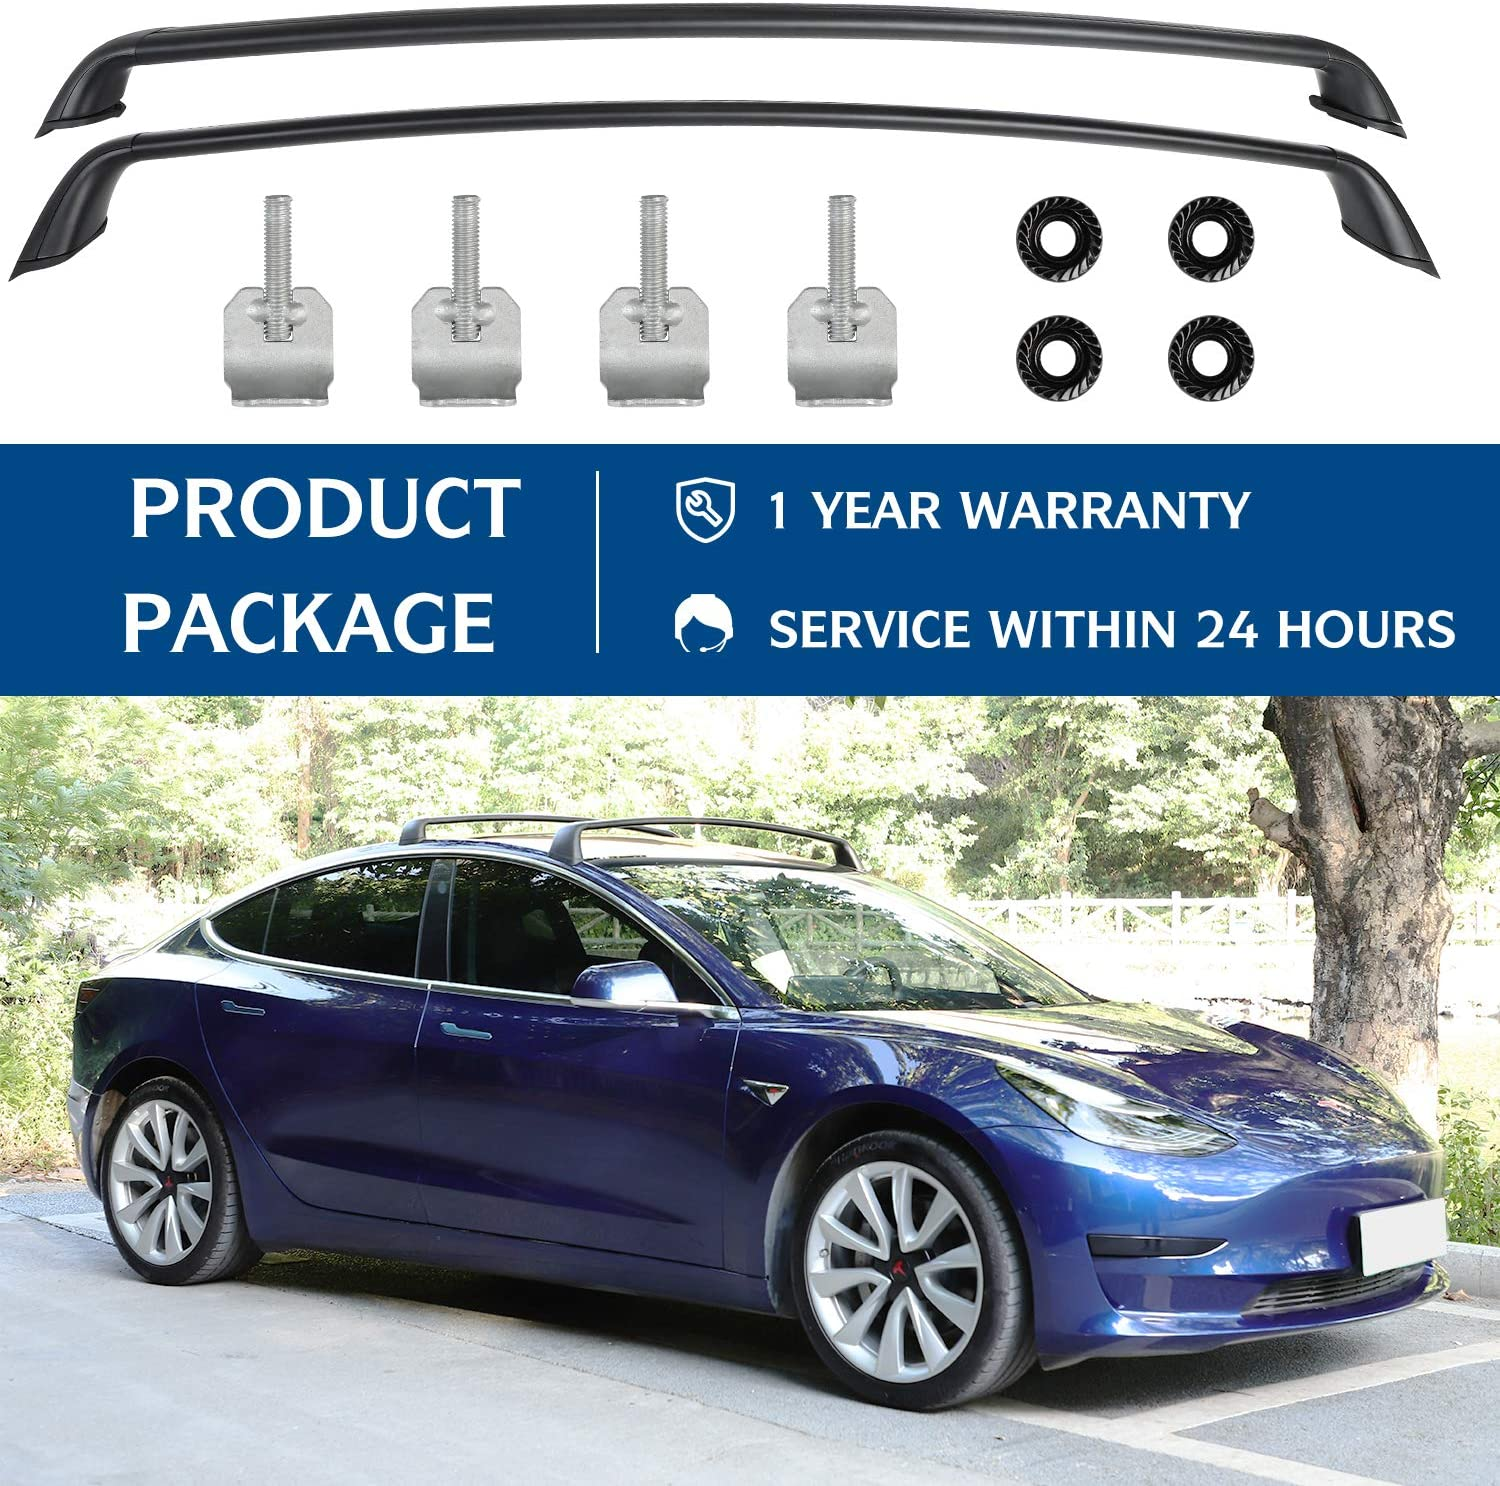 Set of 2 Tesla Model 3 Roof Rack Aluminum Cargo Cross Bars